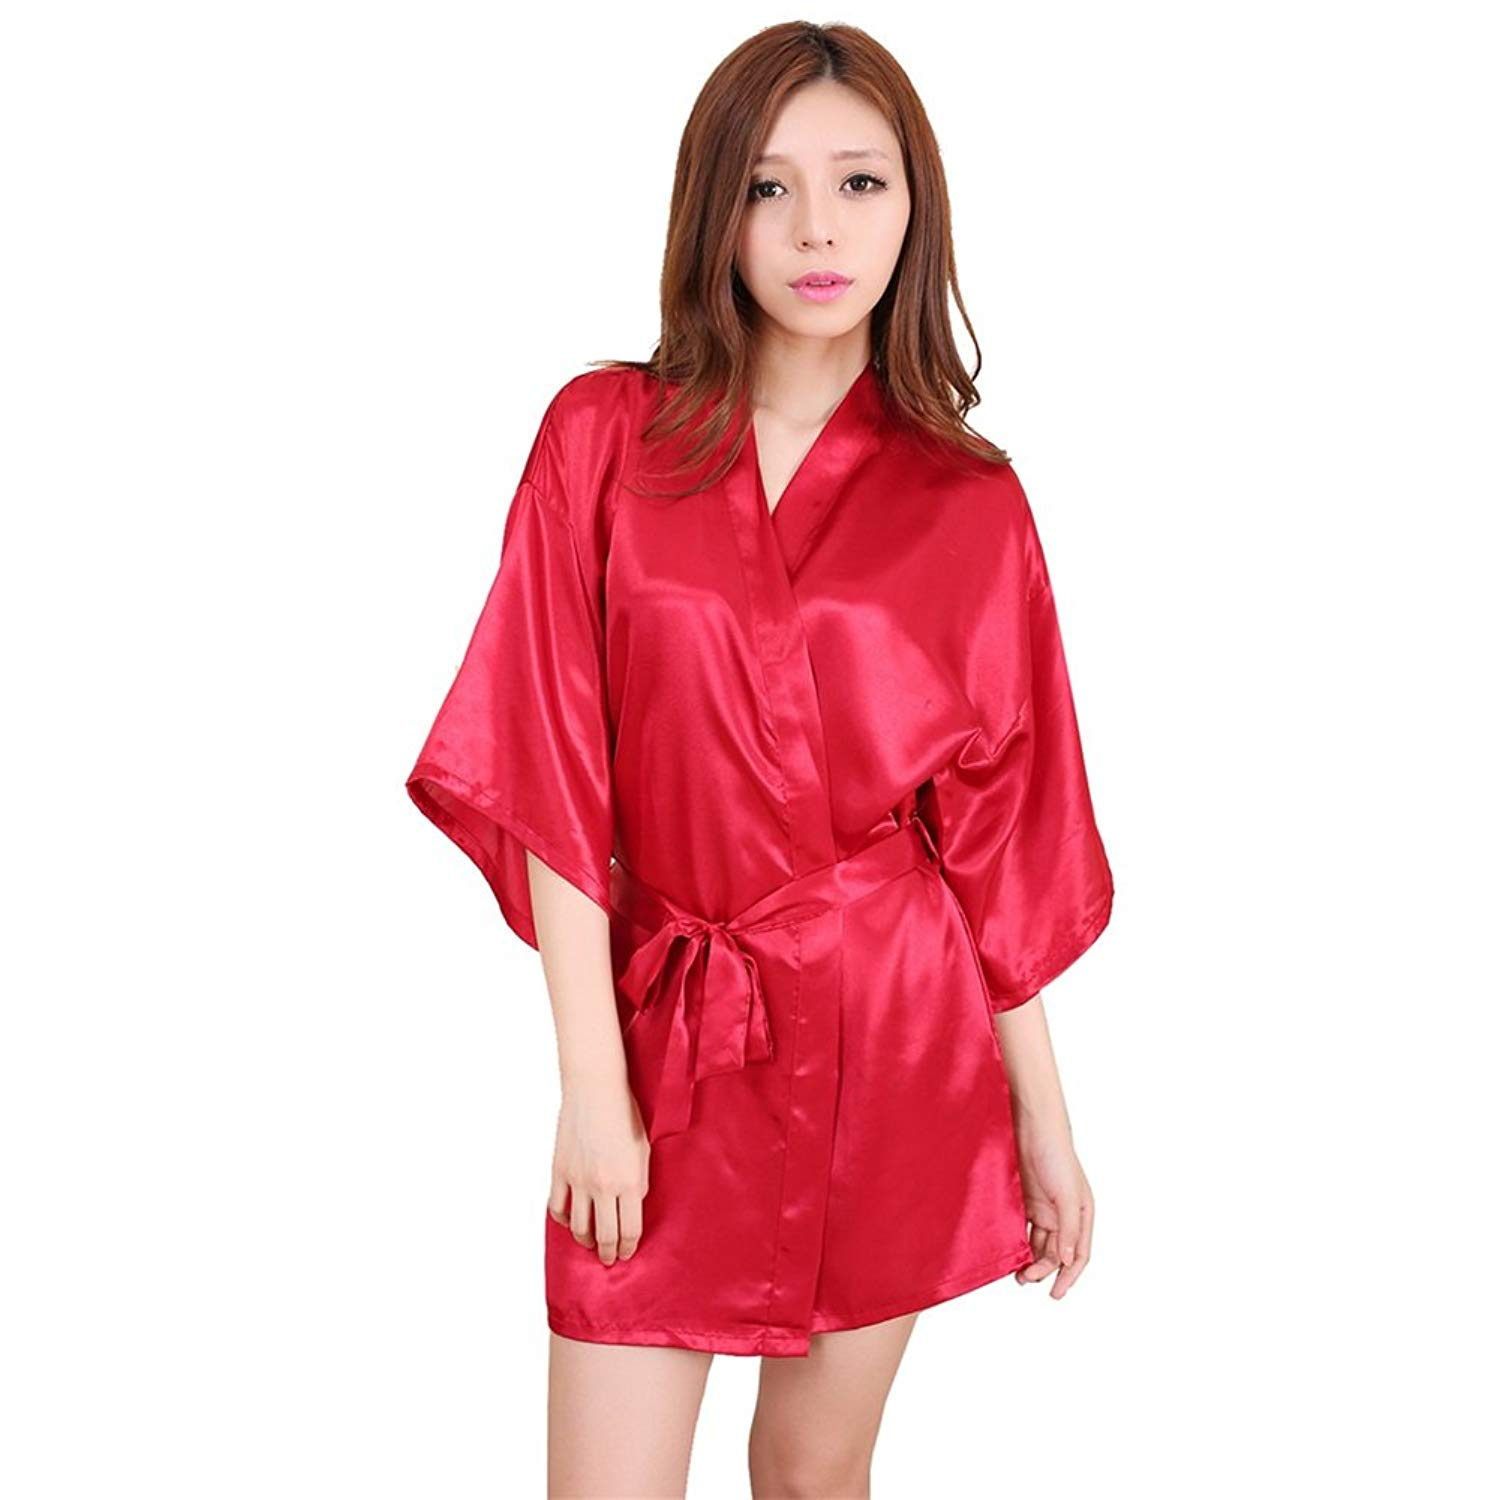 b0dd75658f Get Quotations · U-Faves Women s Solid Color Satin Kimono Short Robe  Housecoat Wedding Party Robe